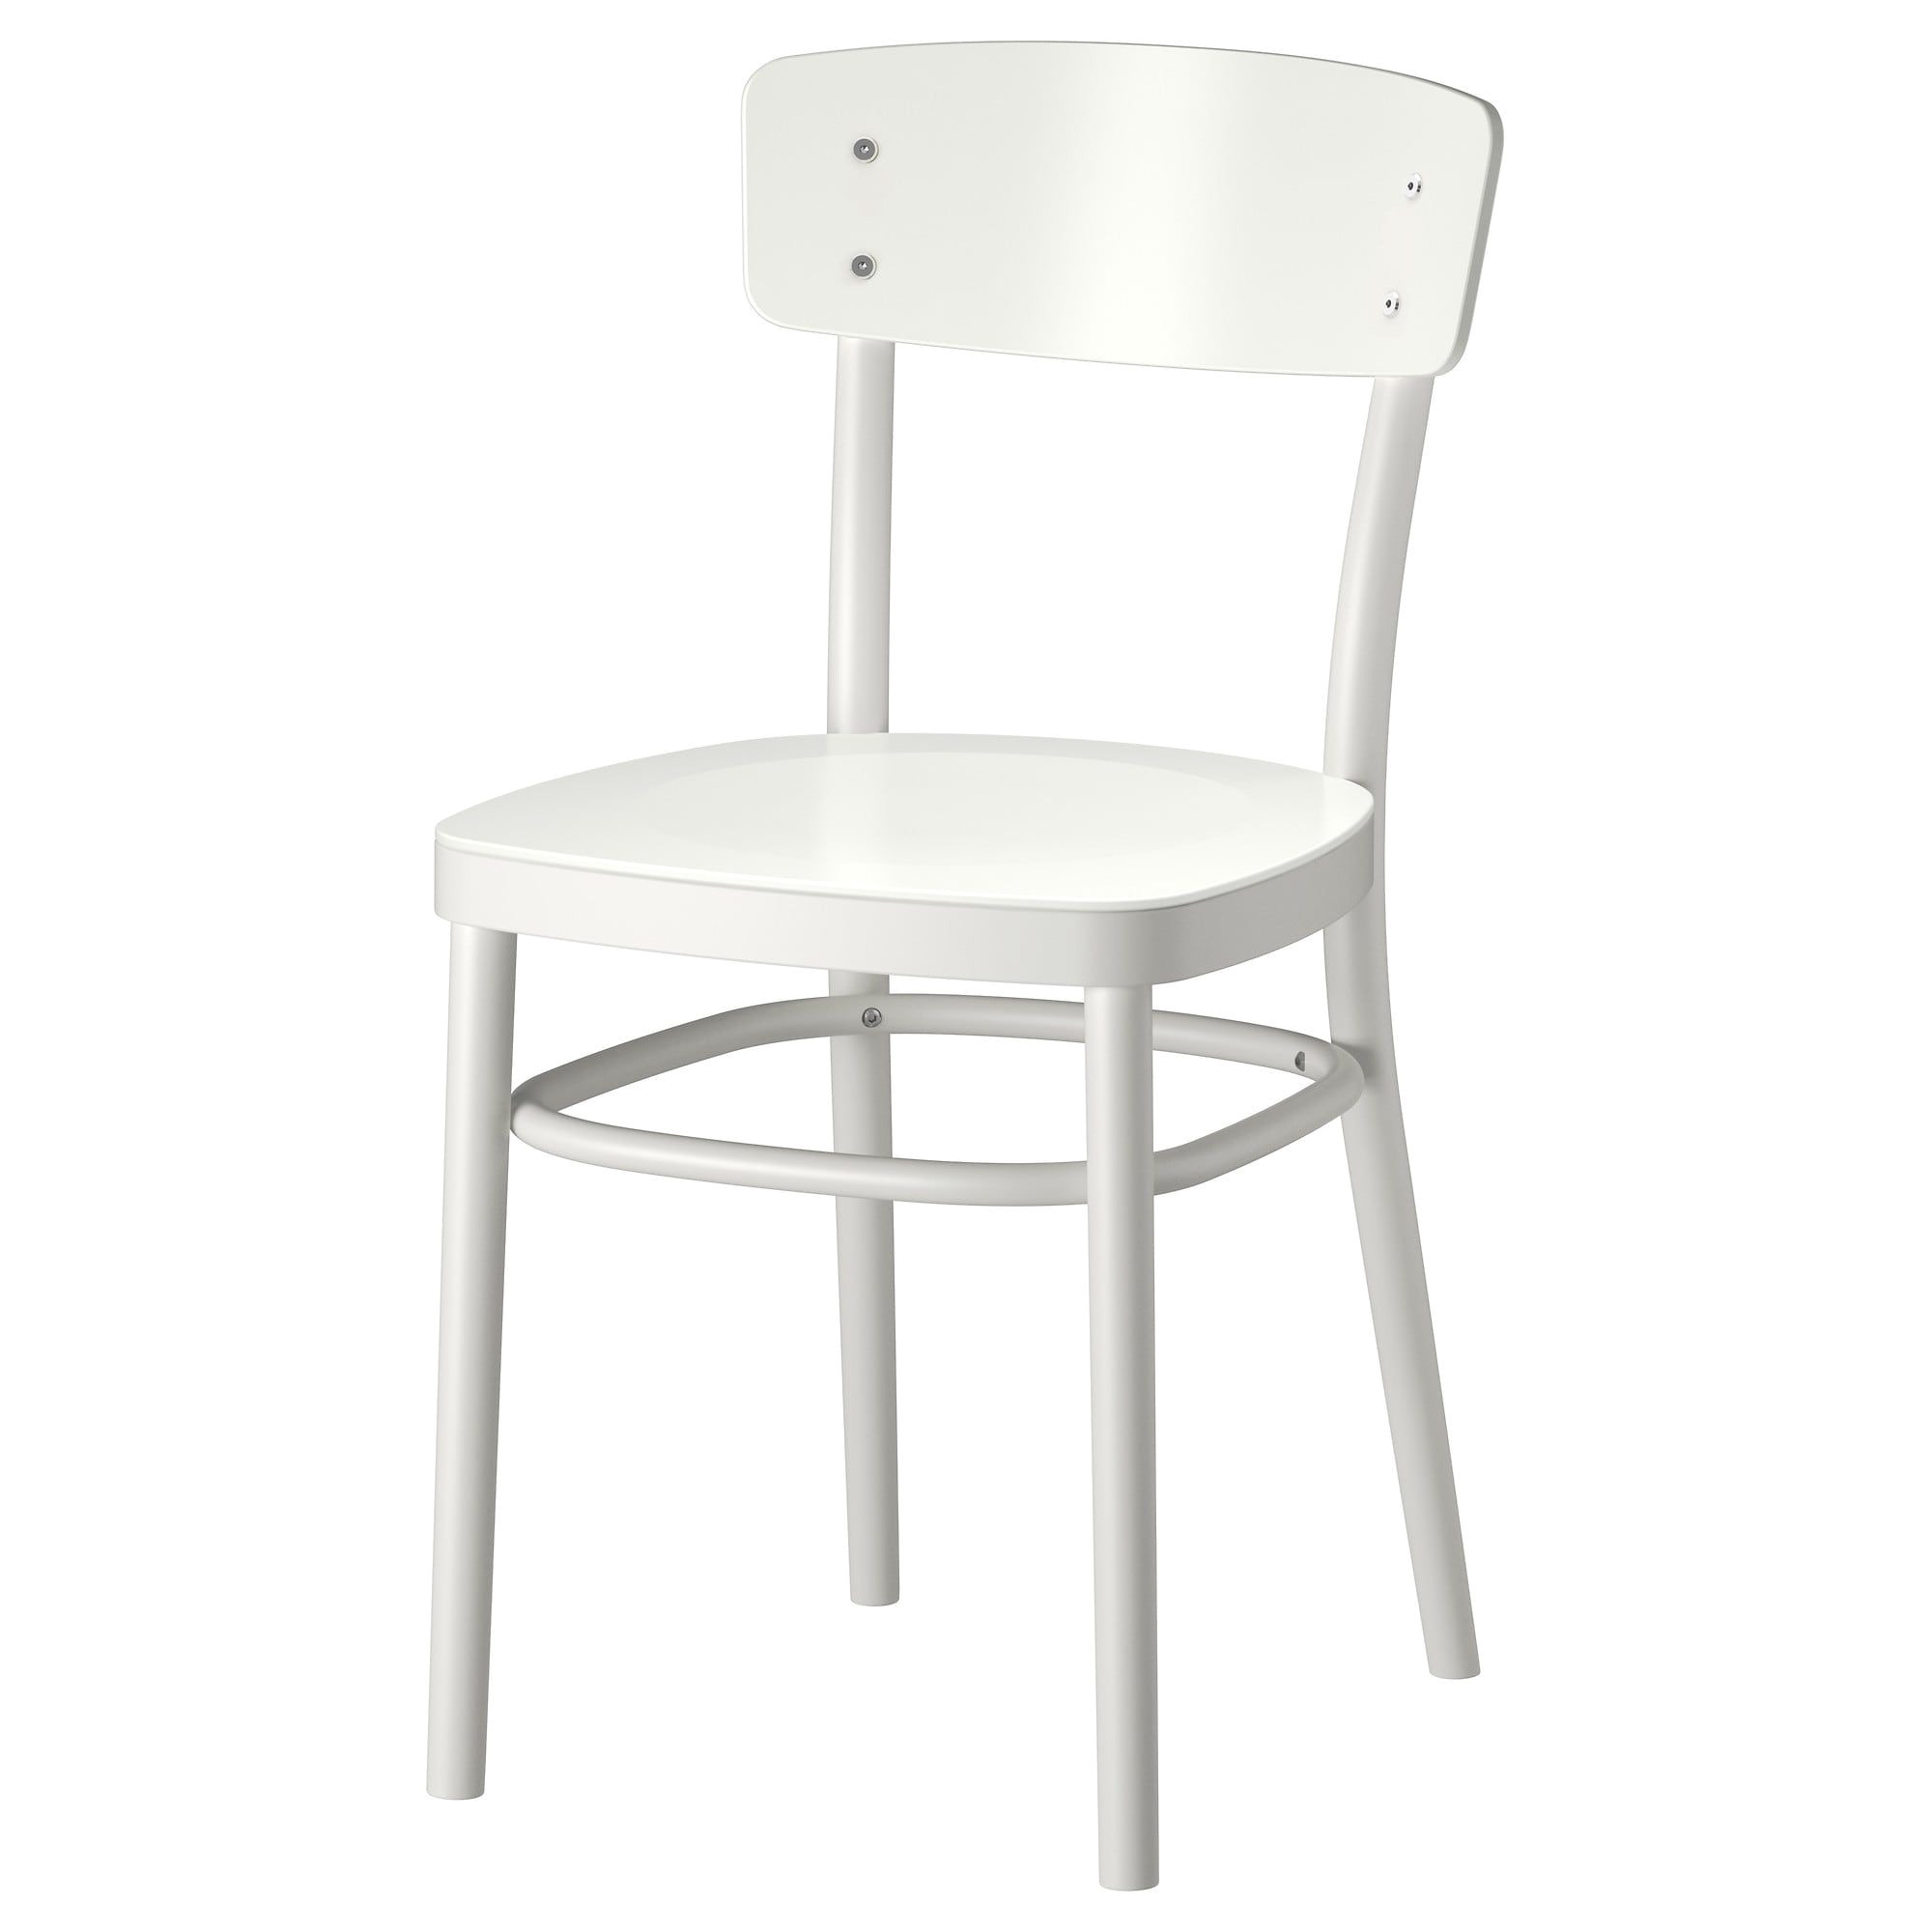 Clear Plastic Dining Chairs Ikea Ikea Idolf Chair White Products